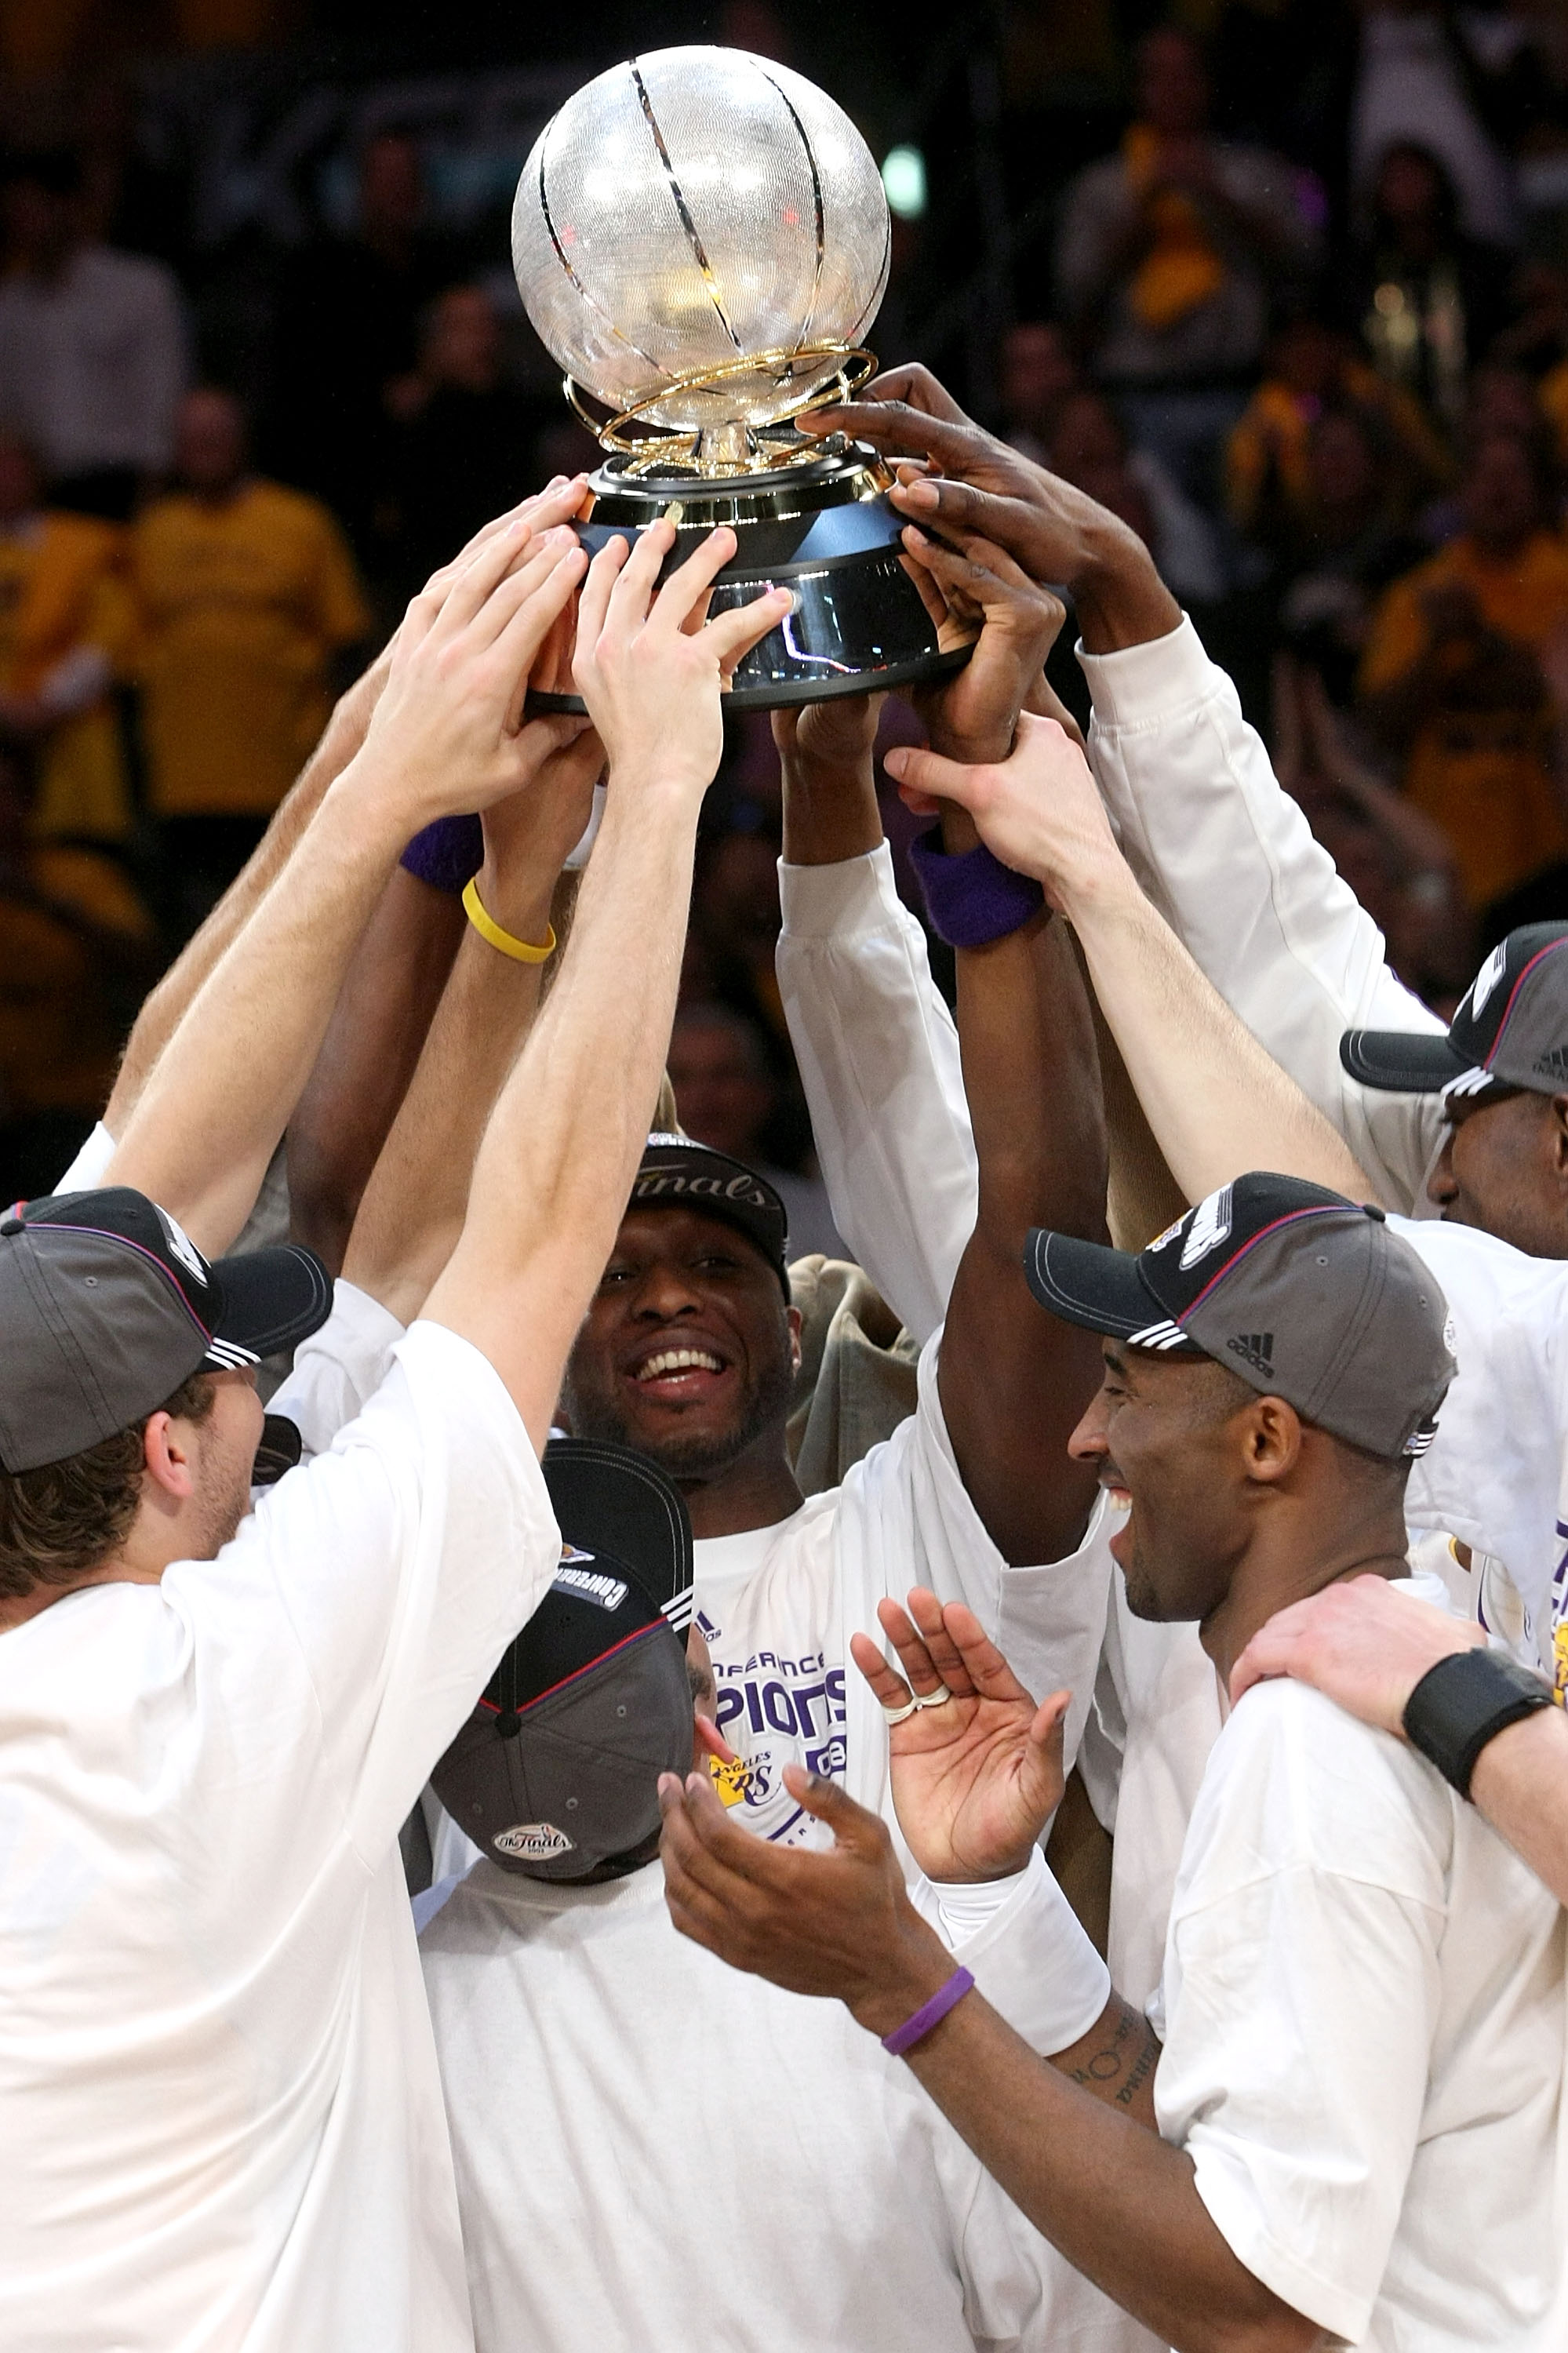 LOS ANGELES, CA - MAY 29:  The Los Angeles Lakers hold up at the Western Conference Championship trophy after they defeated the San Antonio Spurs in Game Five of the Western Conference Finals during the 2008 NBA Playoffs on May 29, 2008 at Staples Center